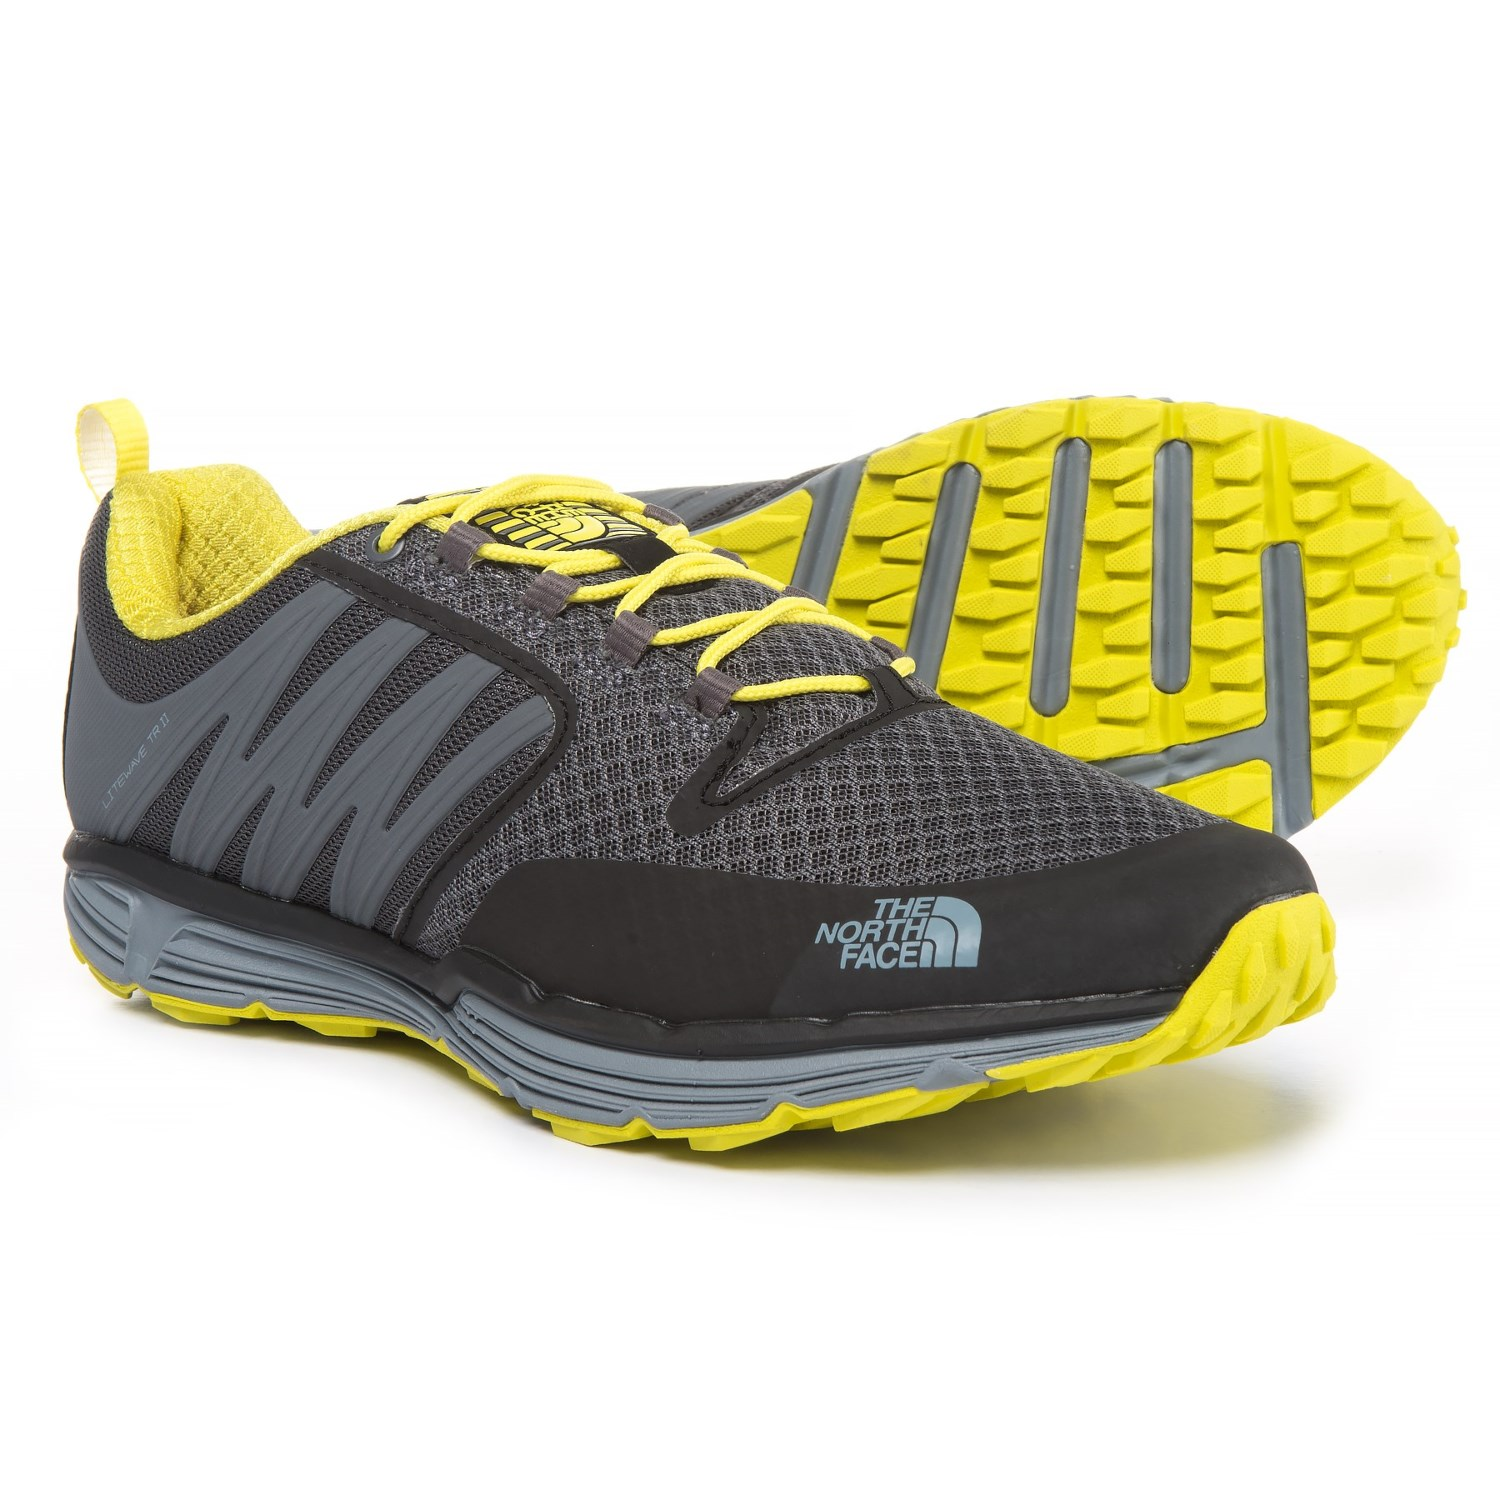 The North Face Litewave TR II Trail Running Shoes (For Men) in Zinc Grey